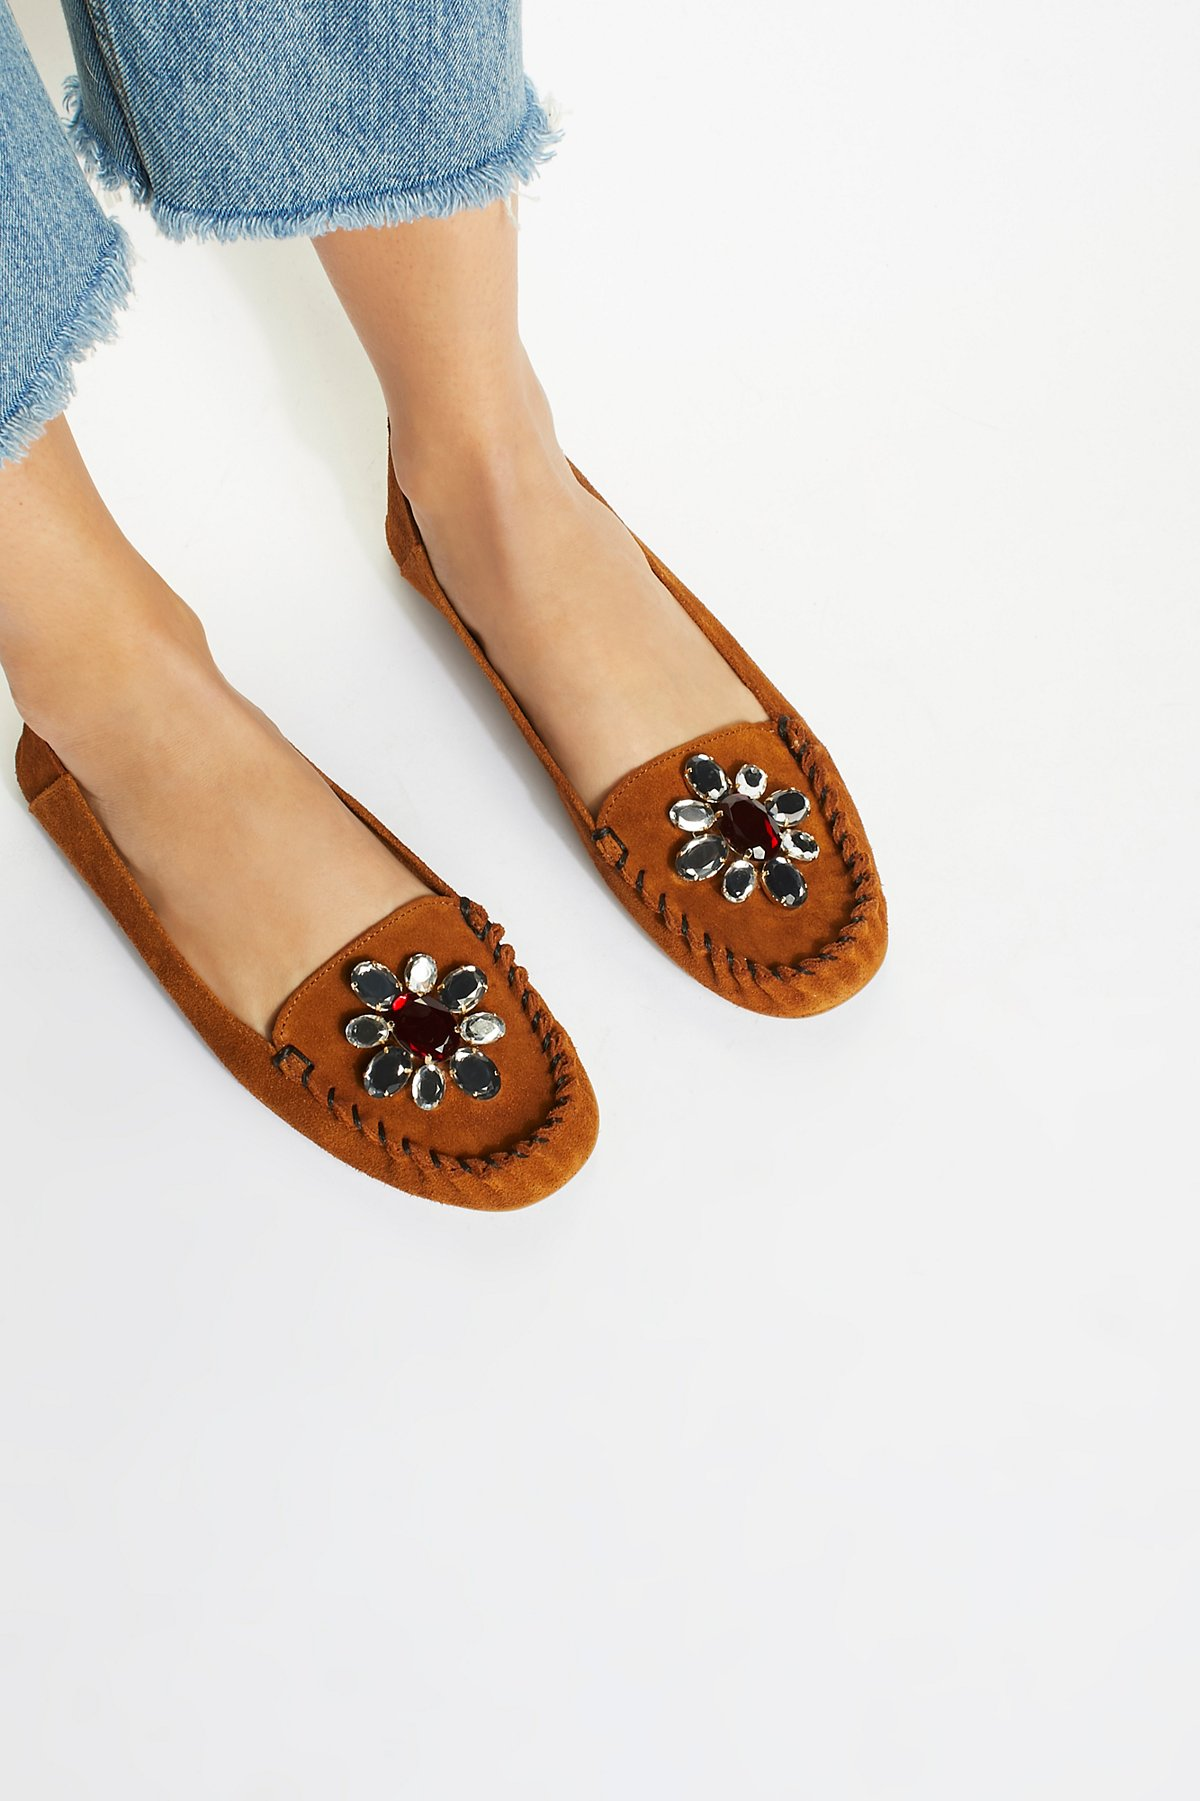 Jewel Tones Moccasin